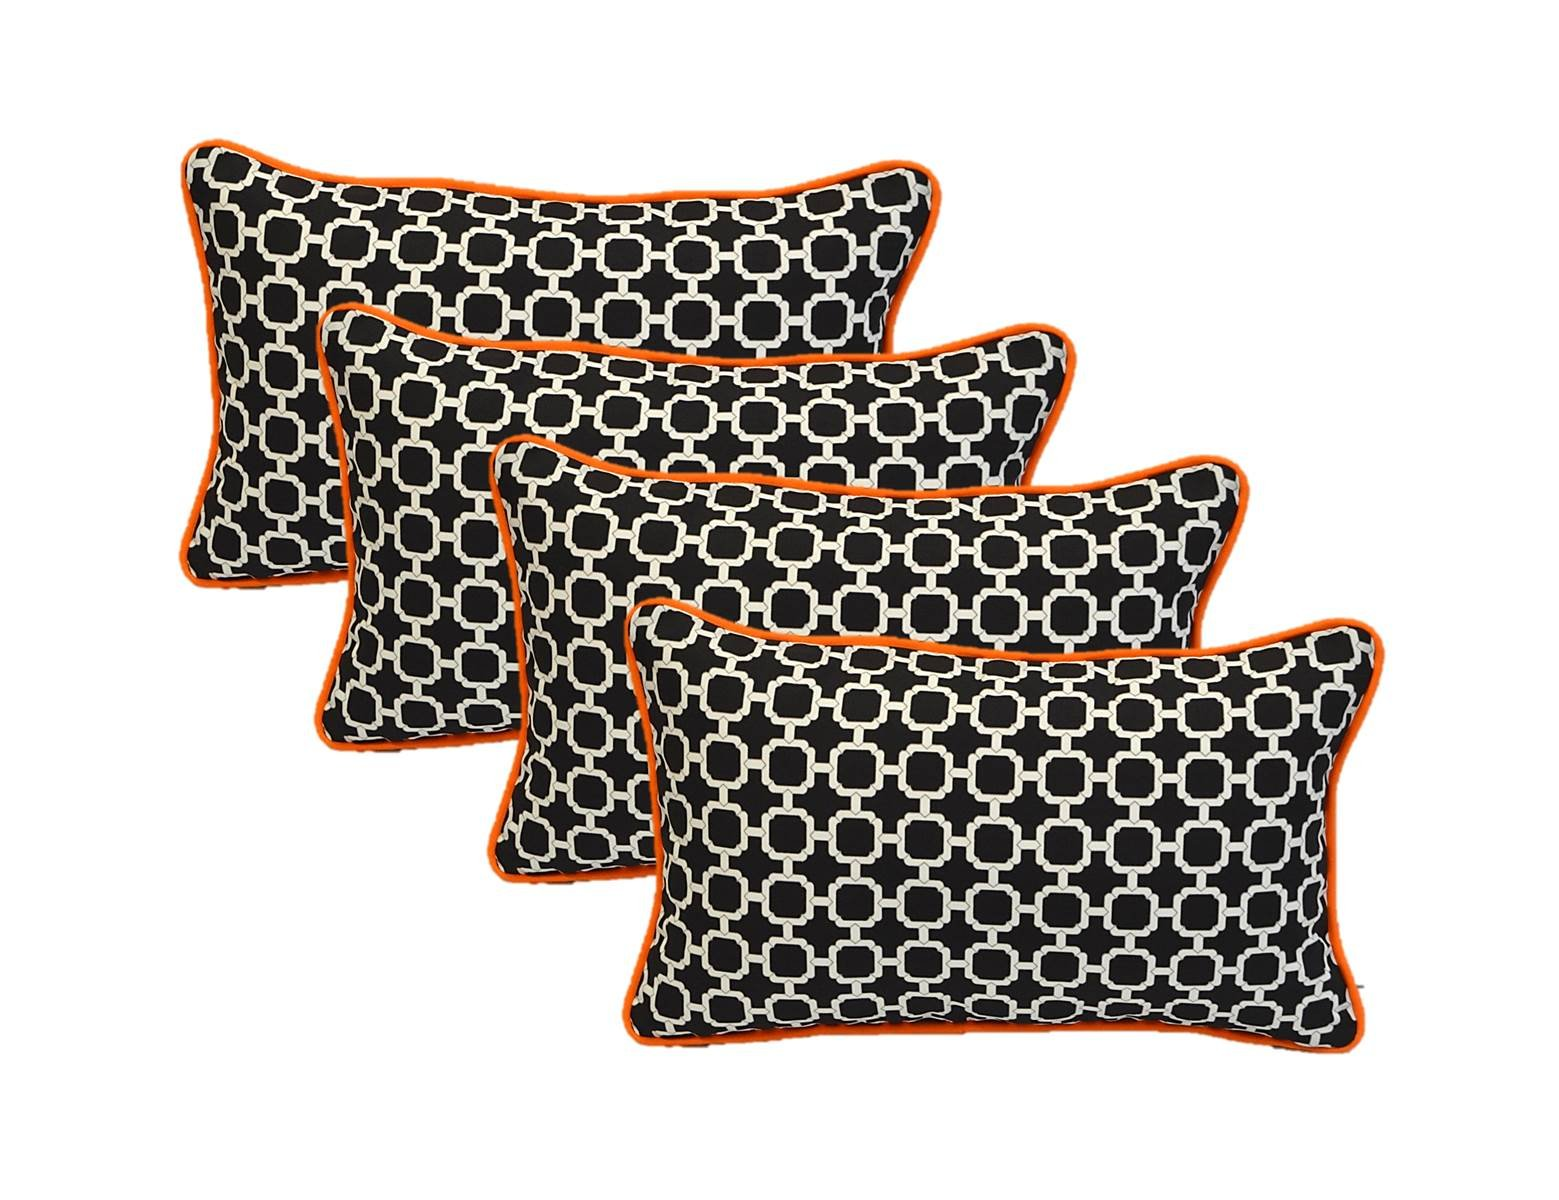 Set of 4 Indoor / Outdoor Decorative Lumbar / Rectangle Pillows - Black and White Geometric Hockley with Orange Piping / Cording - Zipper Cover & Insert